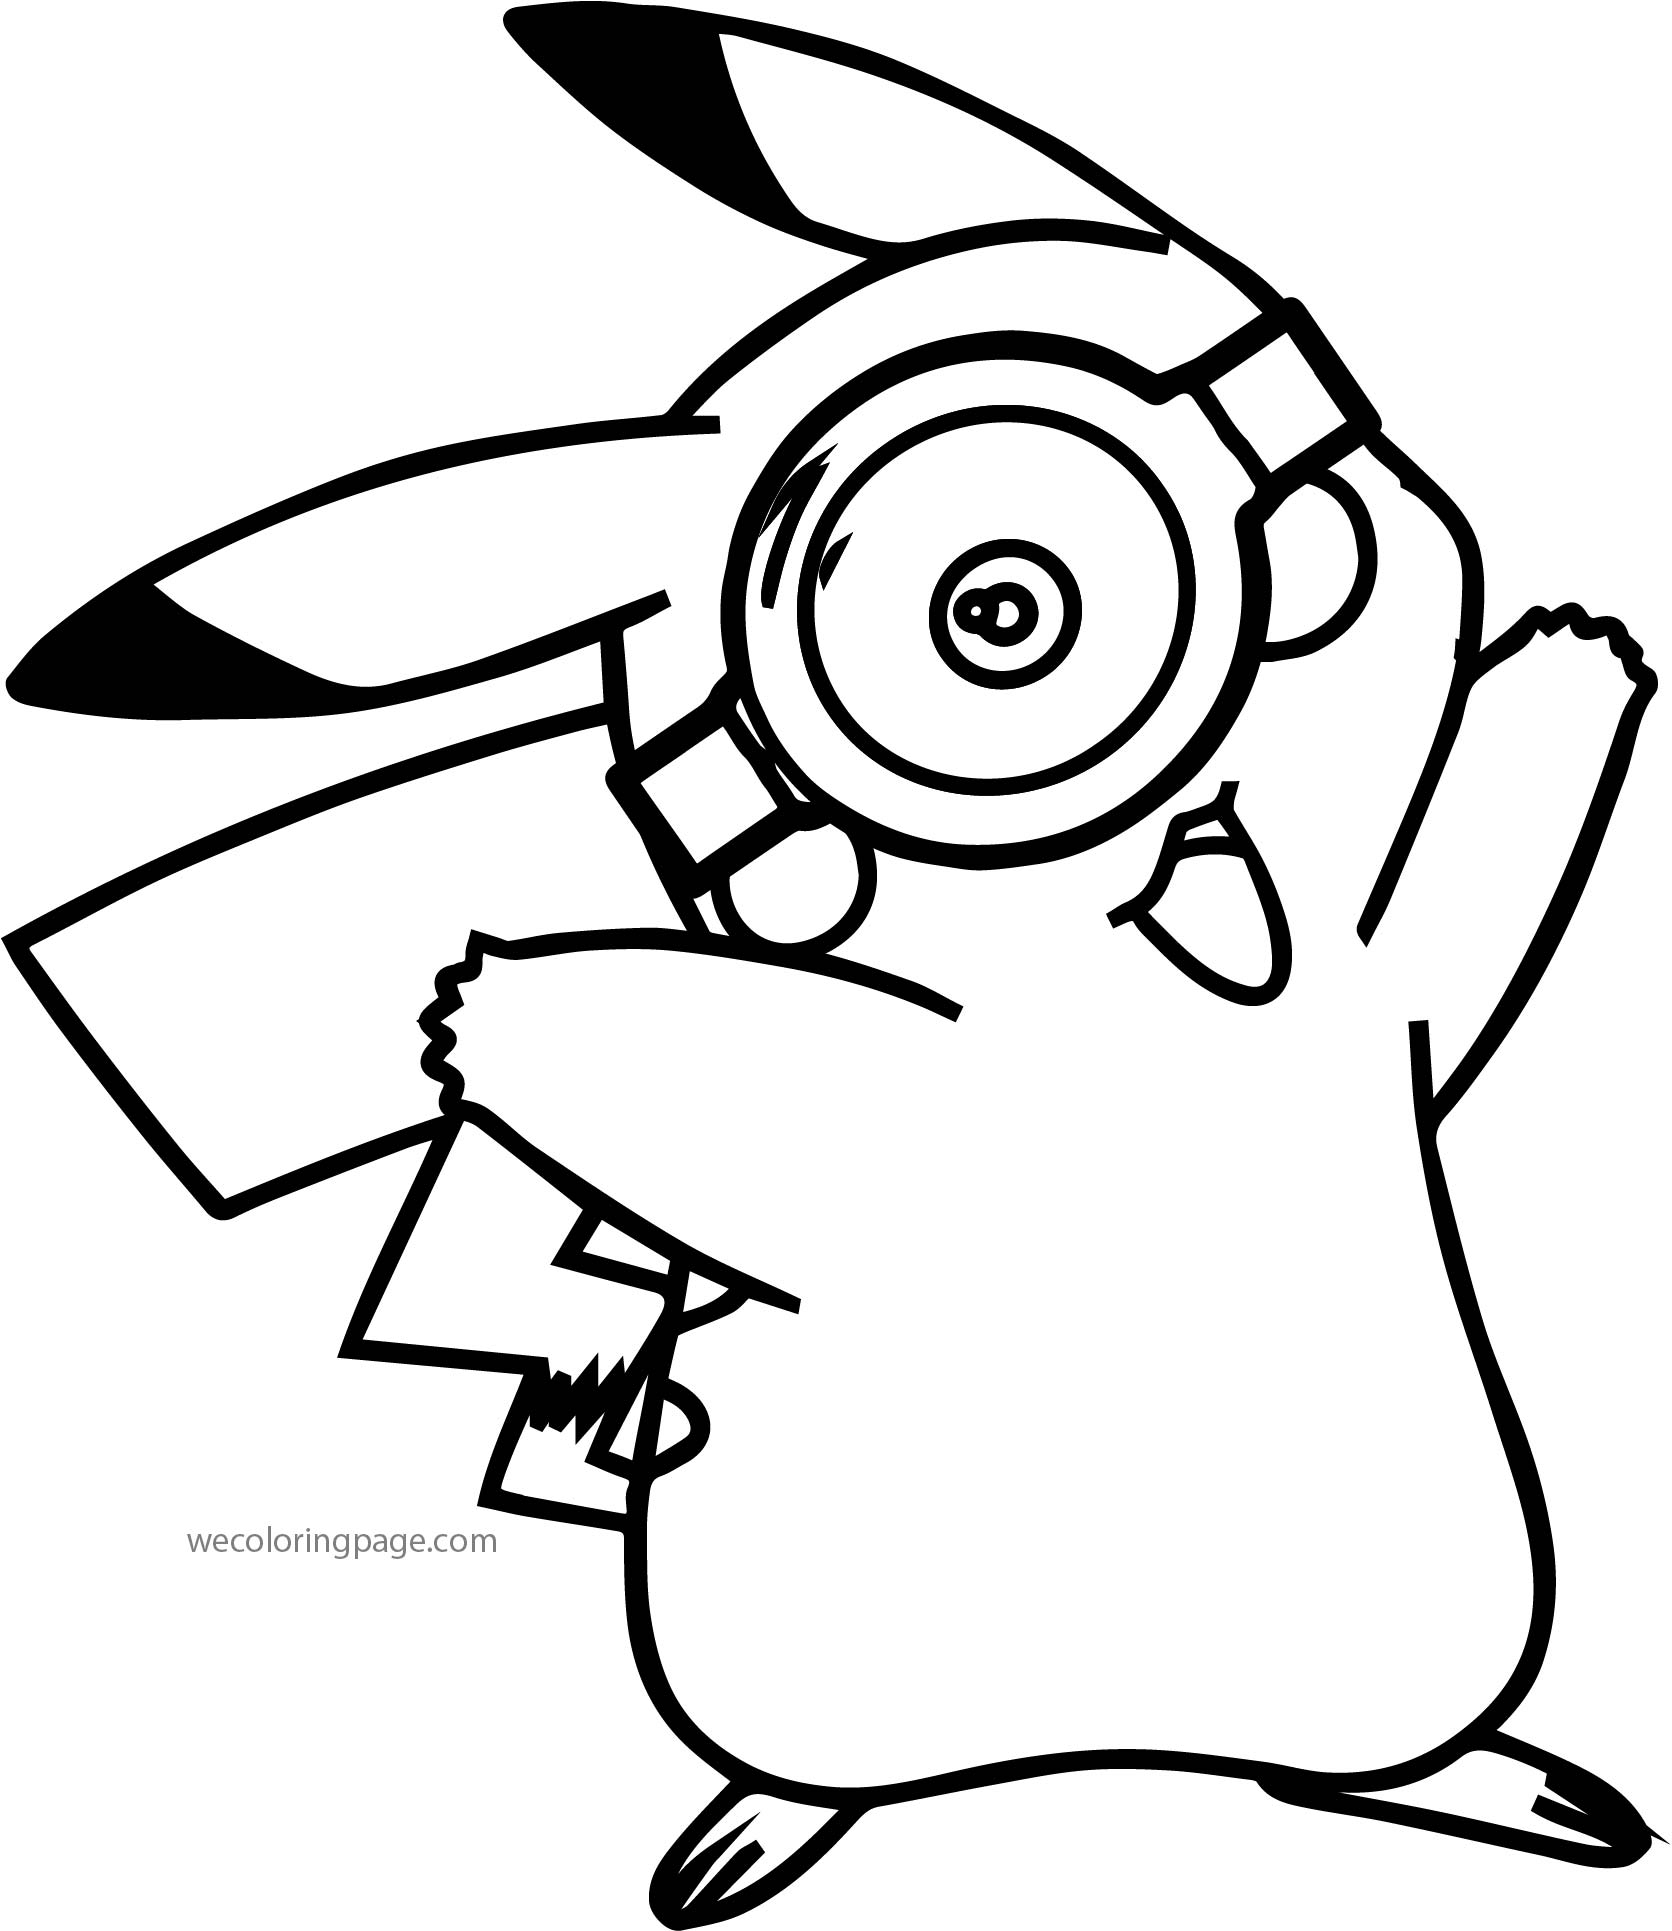 pikachu coloring pages - minion pikachu pokemon glass coloring page